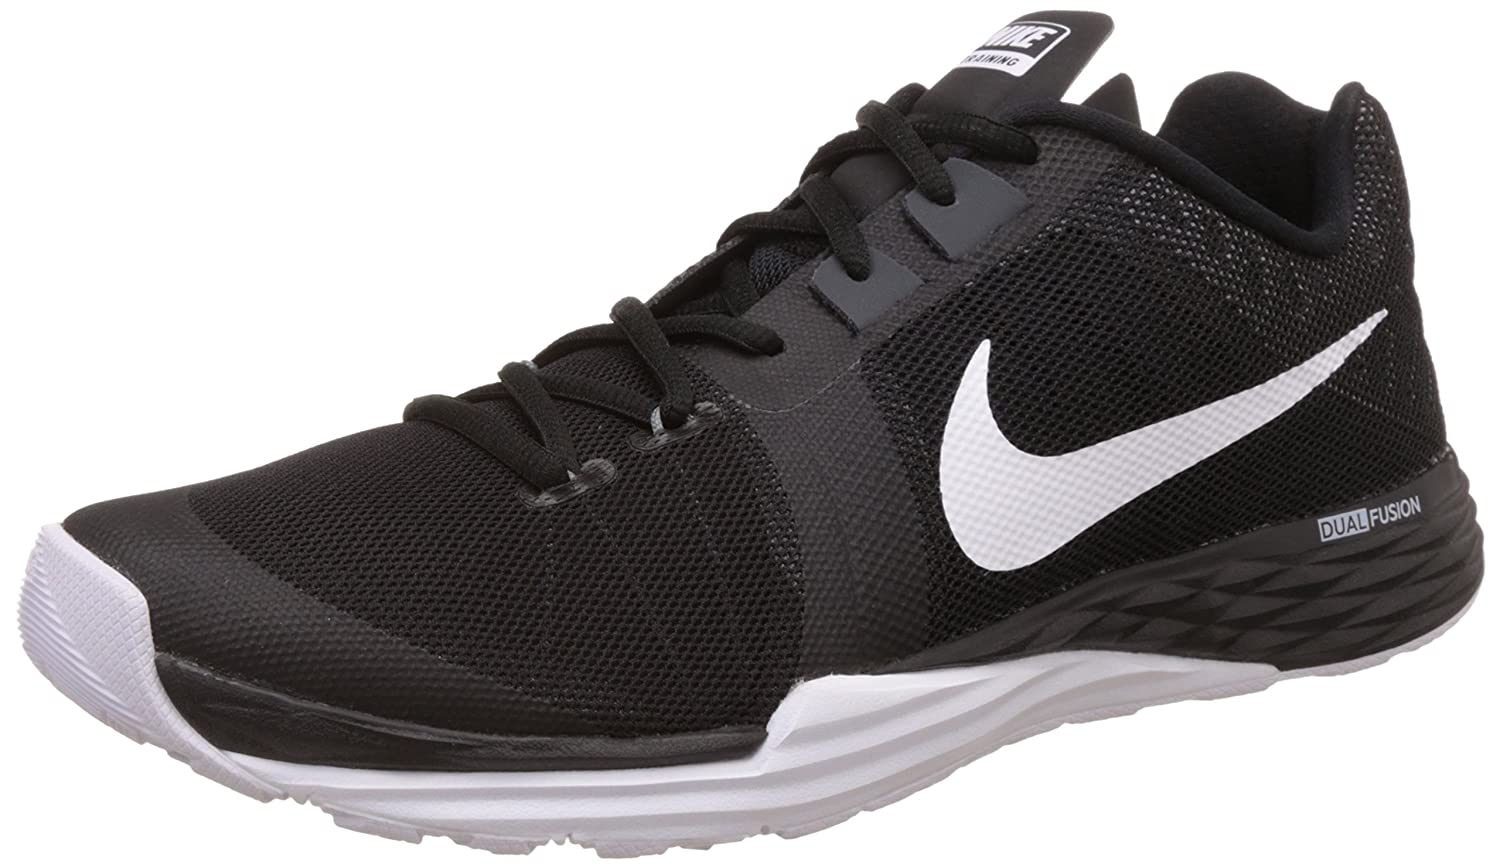 big sale 3dda7 12cec Nike Men s Train Prime Iron Df Running Shoes  Buy Online at Low Prices in  India - Amazon.in